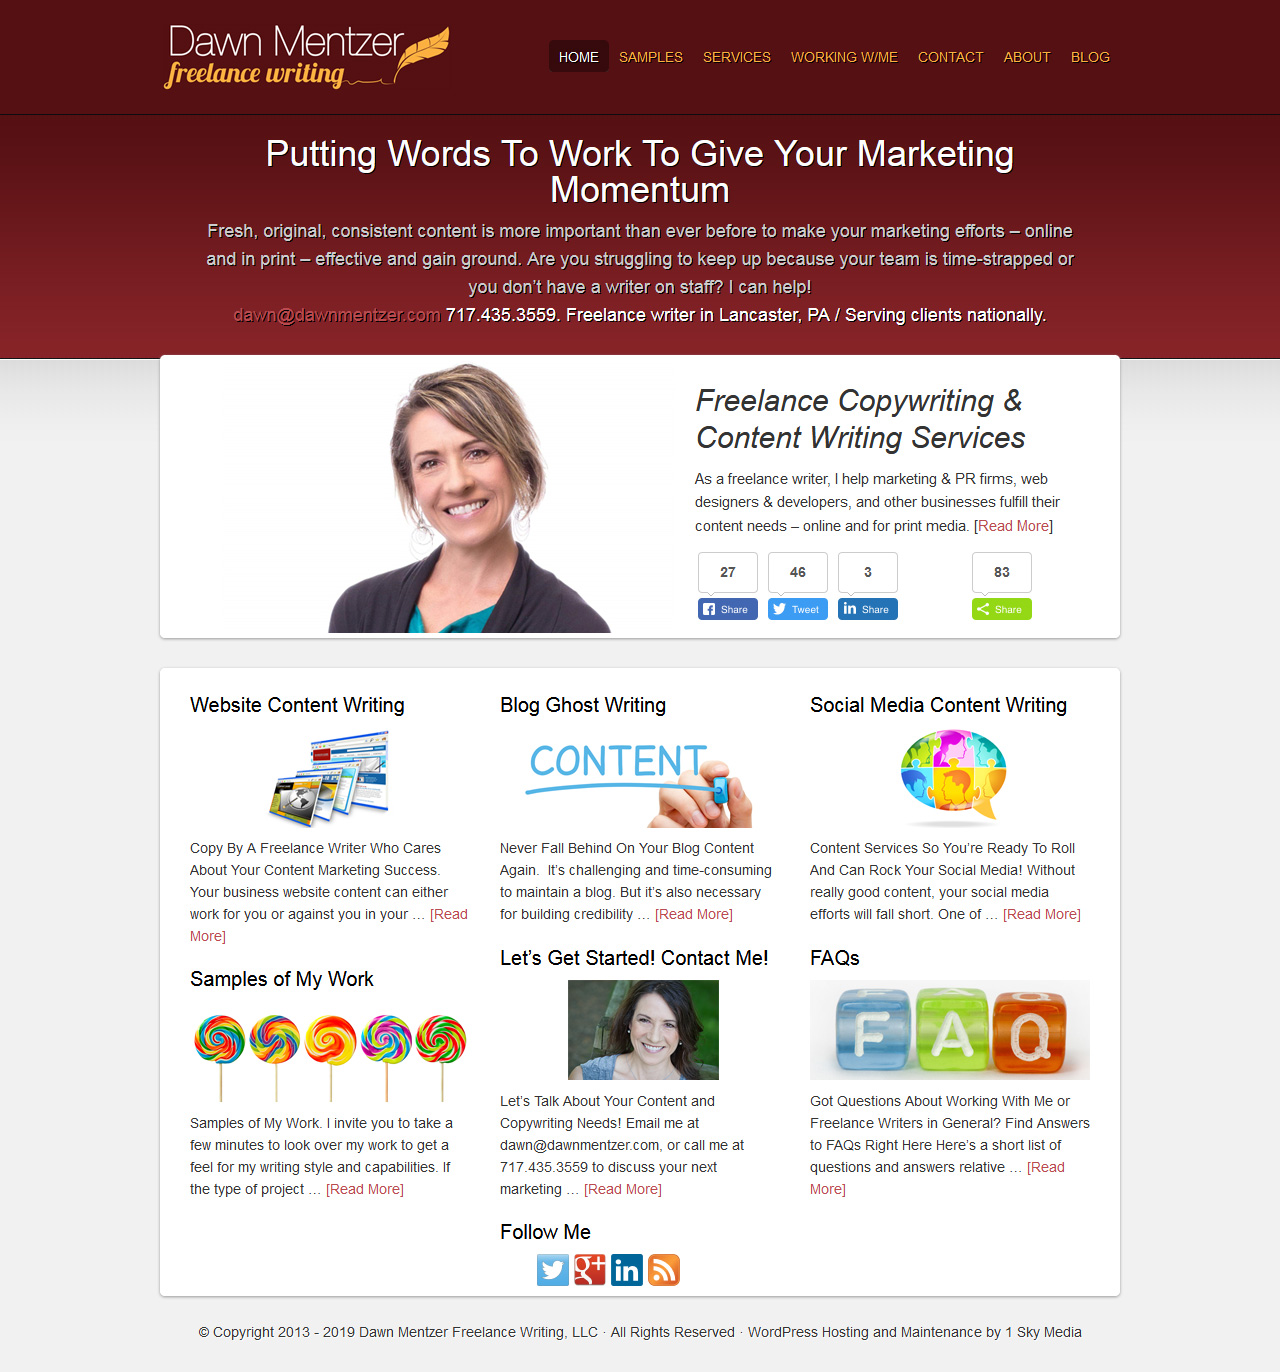 Dawn Mentzer Freelance Writing - copywriter website design